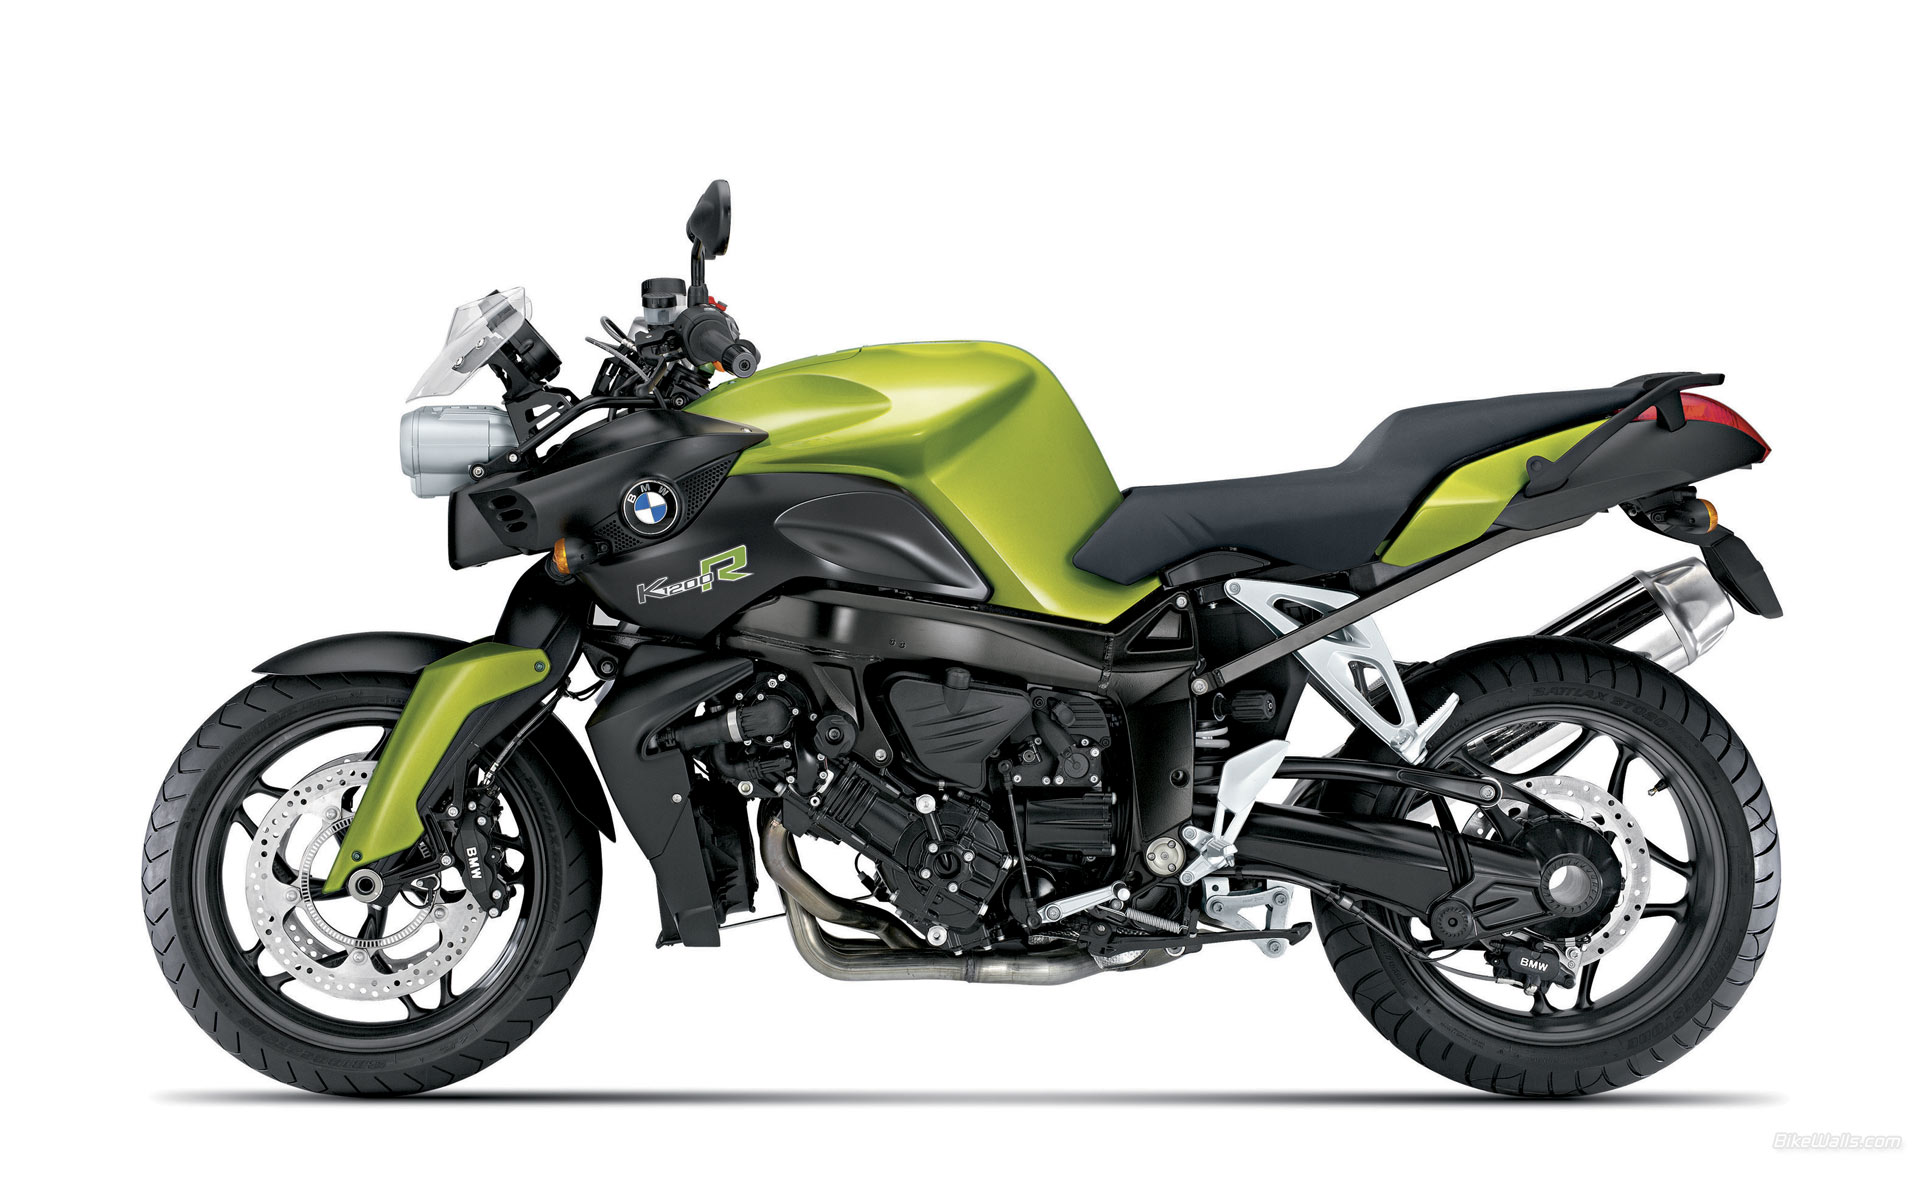 BMW K 1200 R 2008 Green 147.71 Kb